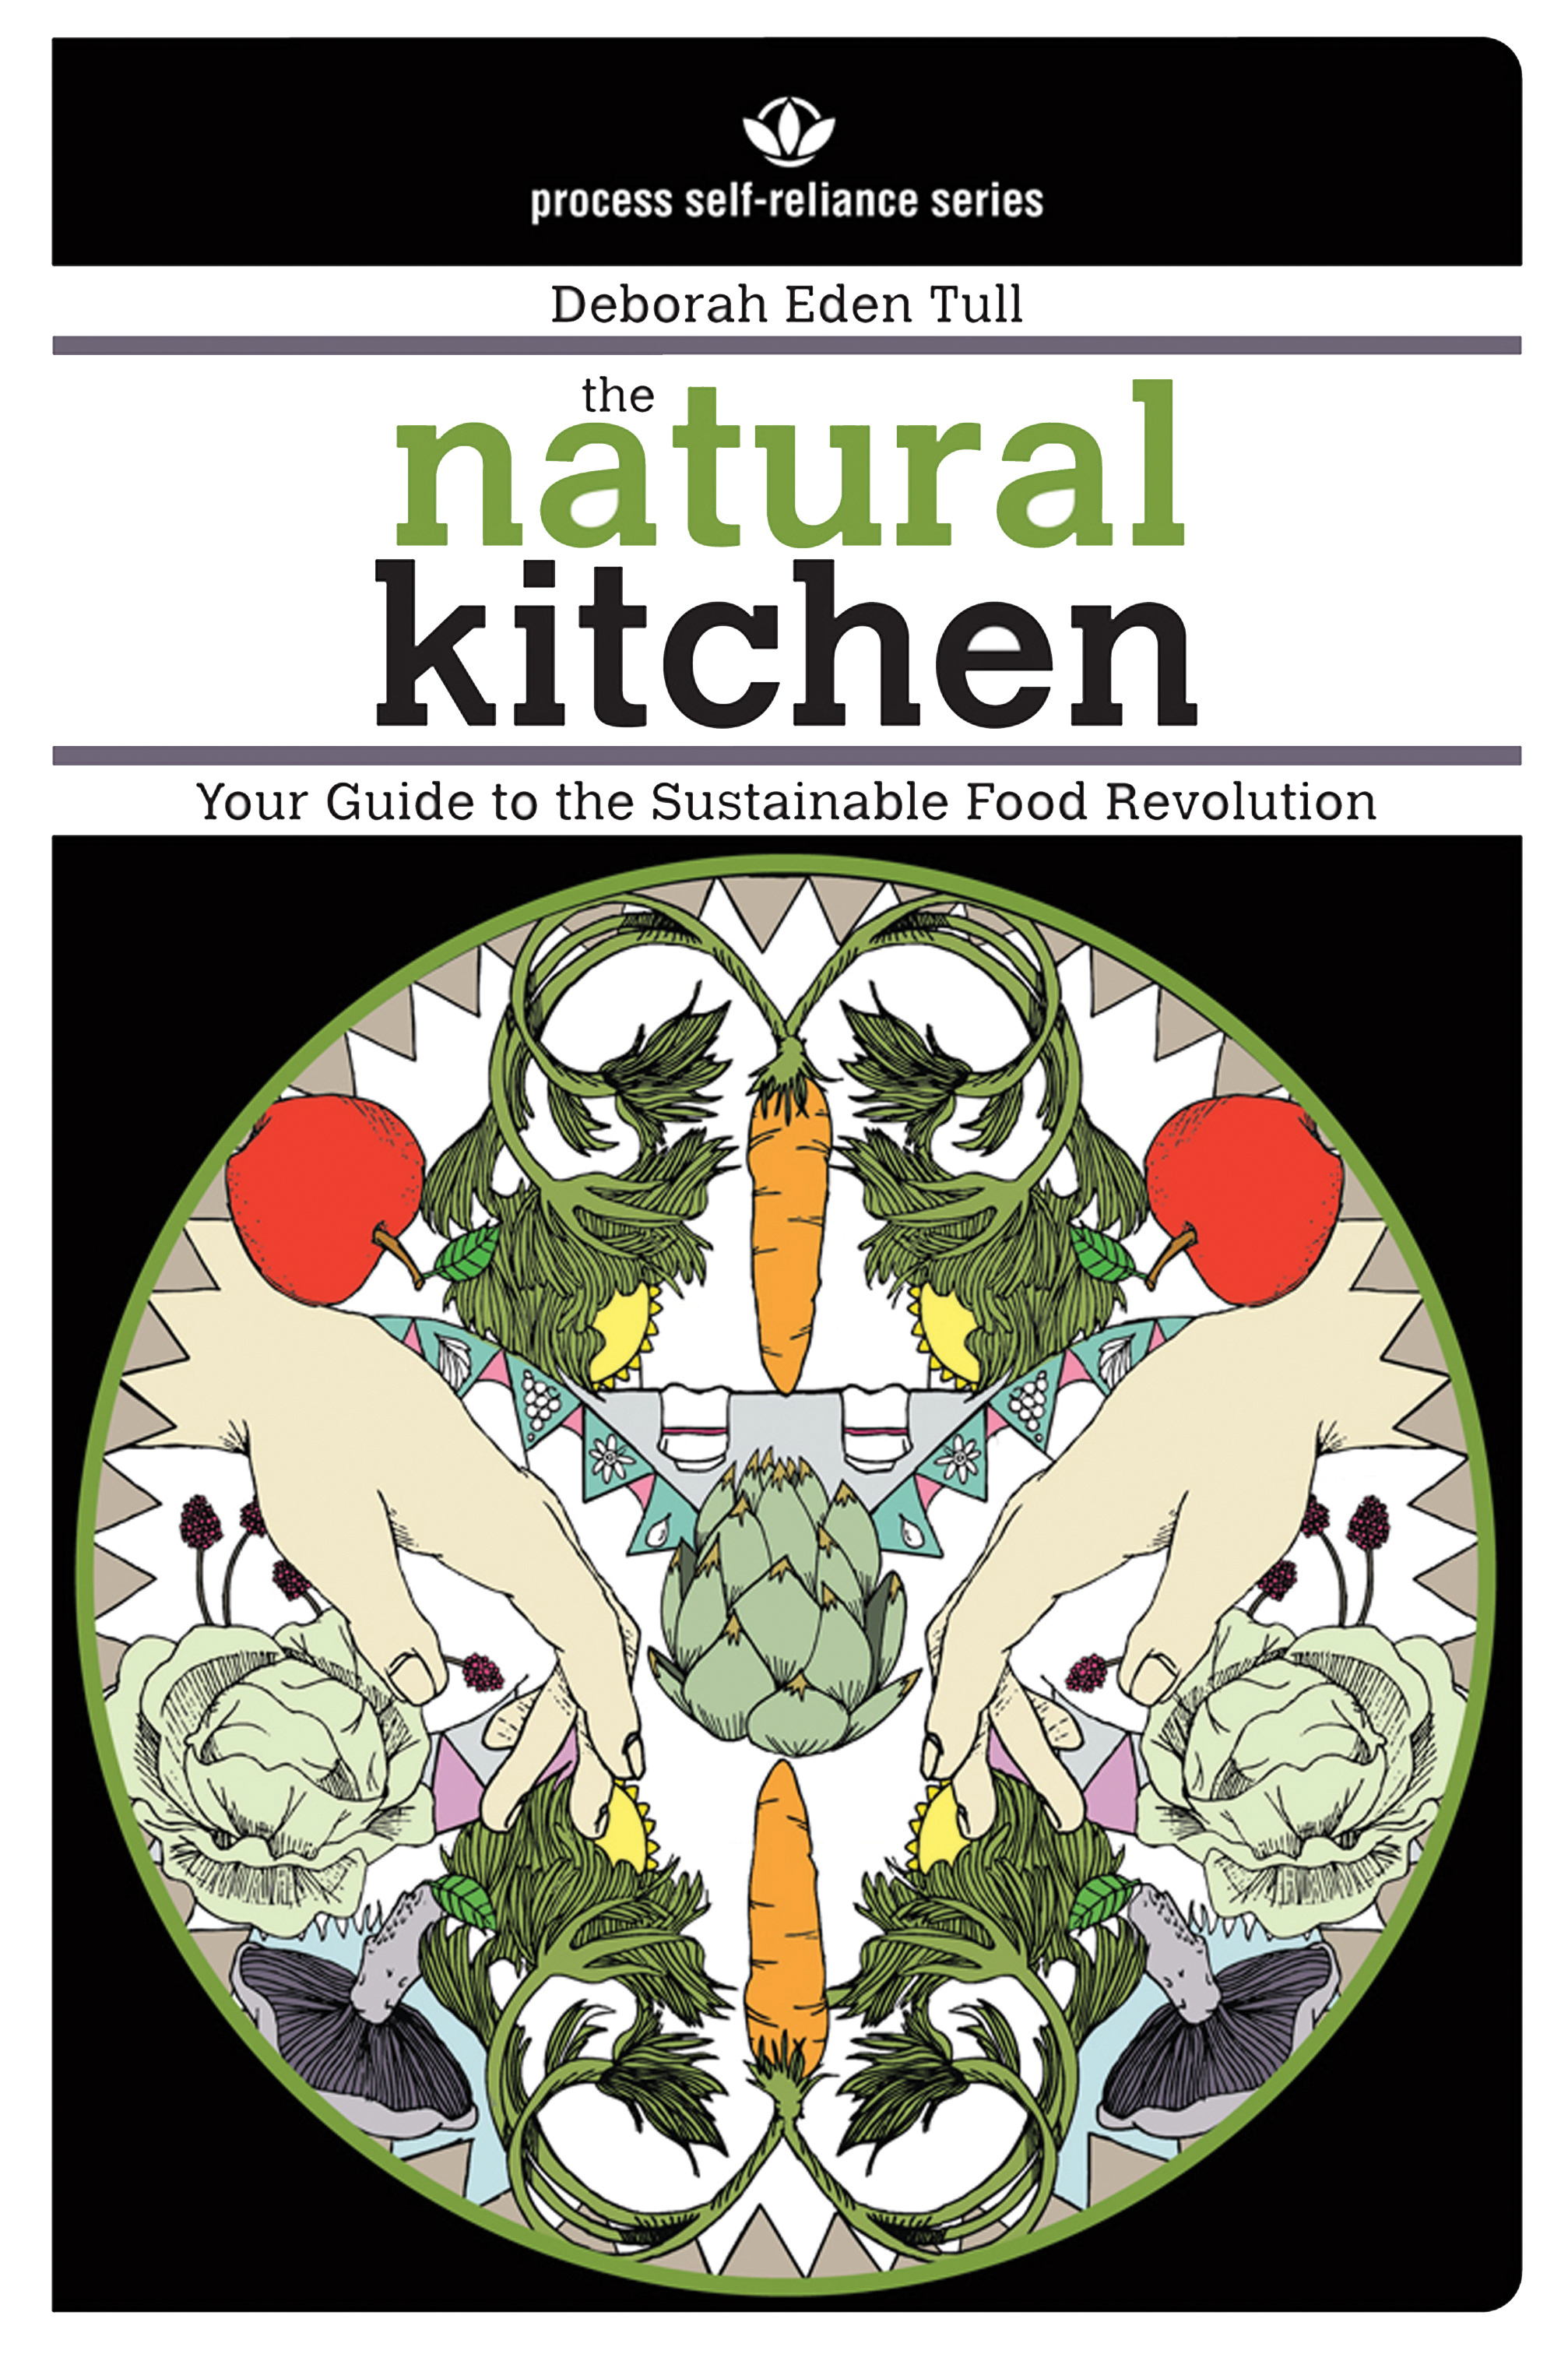 naturalkitchen.jpg